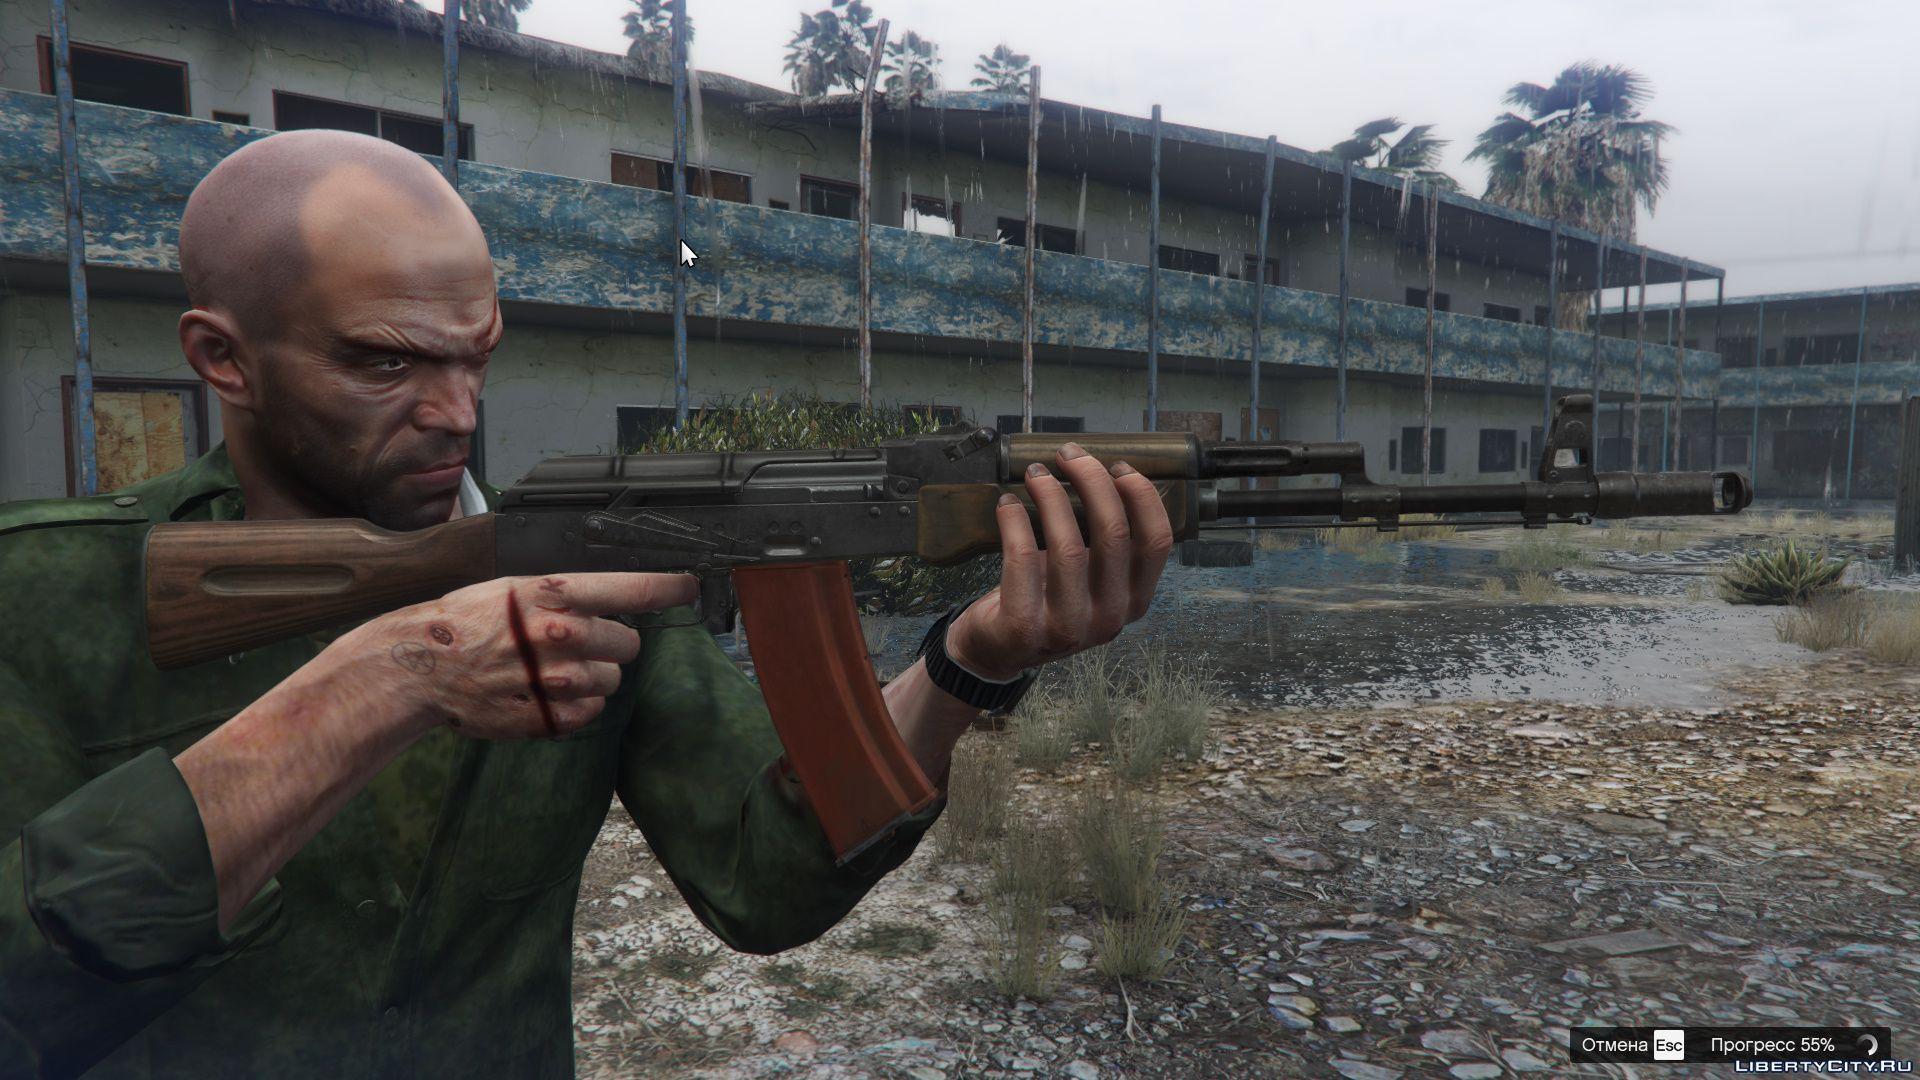 AK-74 from Escape from Tarkov for GTA 5